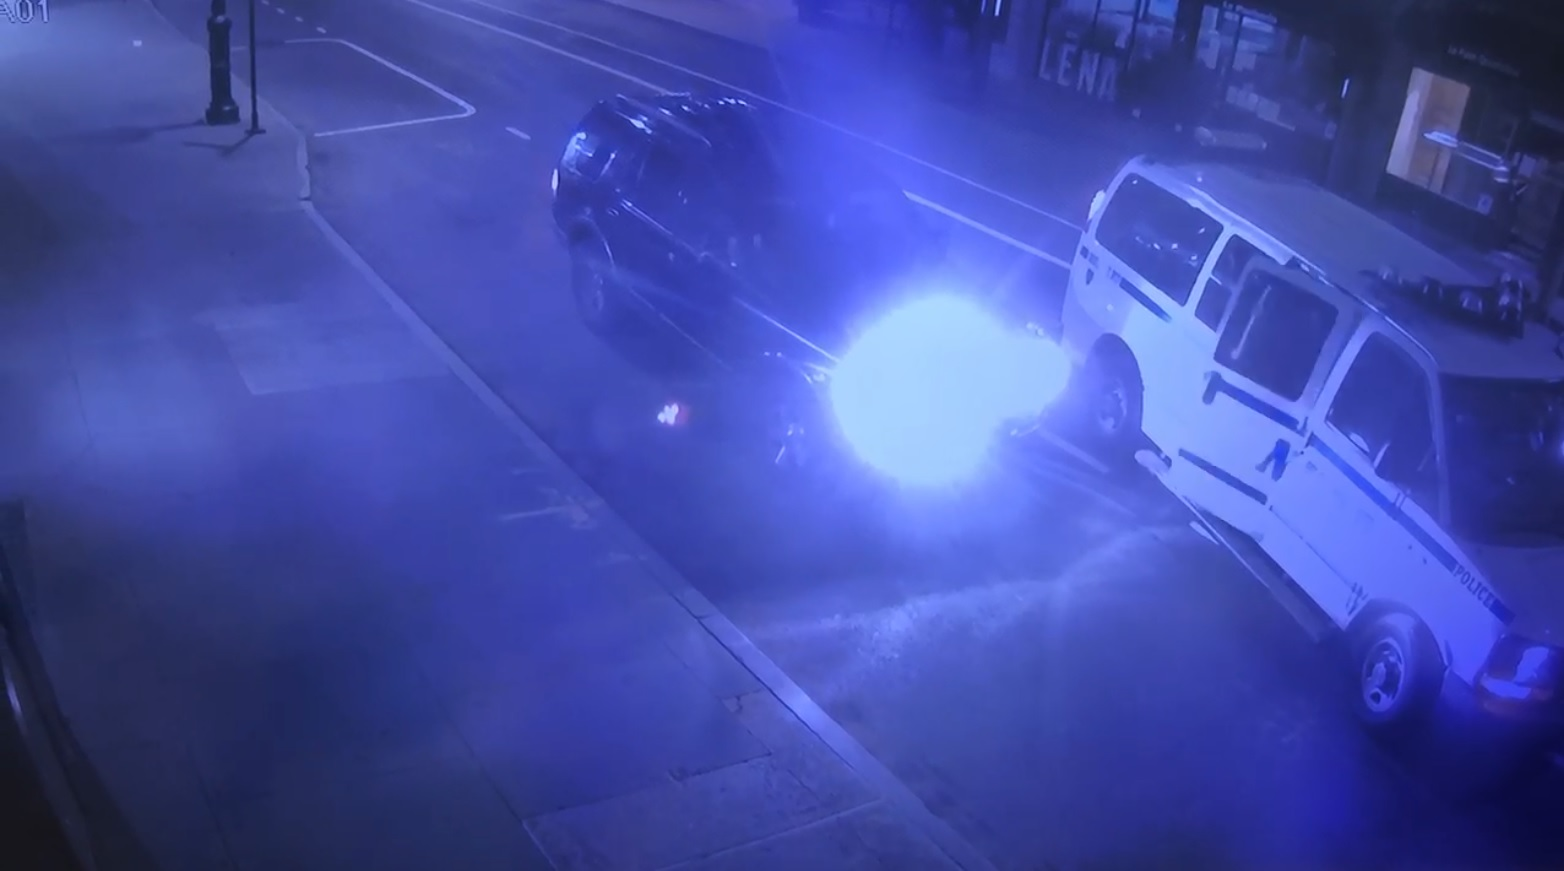 NYPD officer hit by car while chasing alleged looters